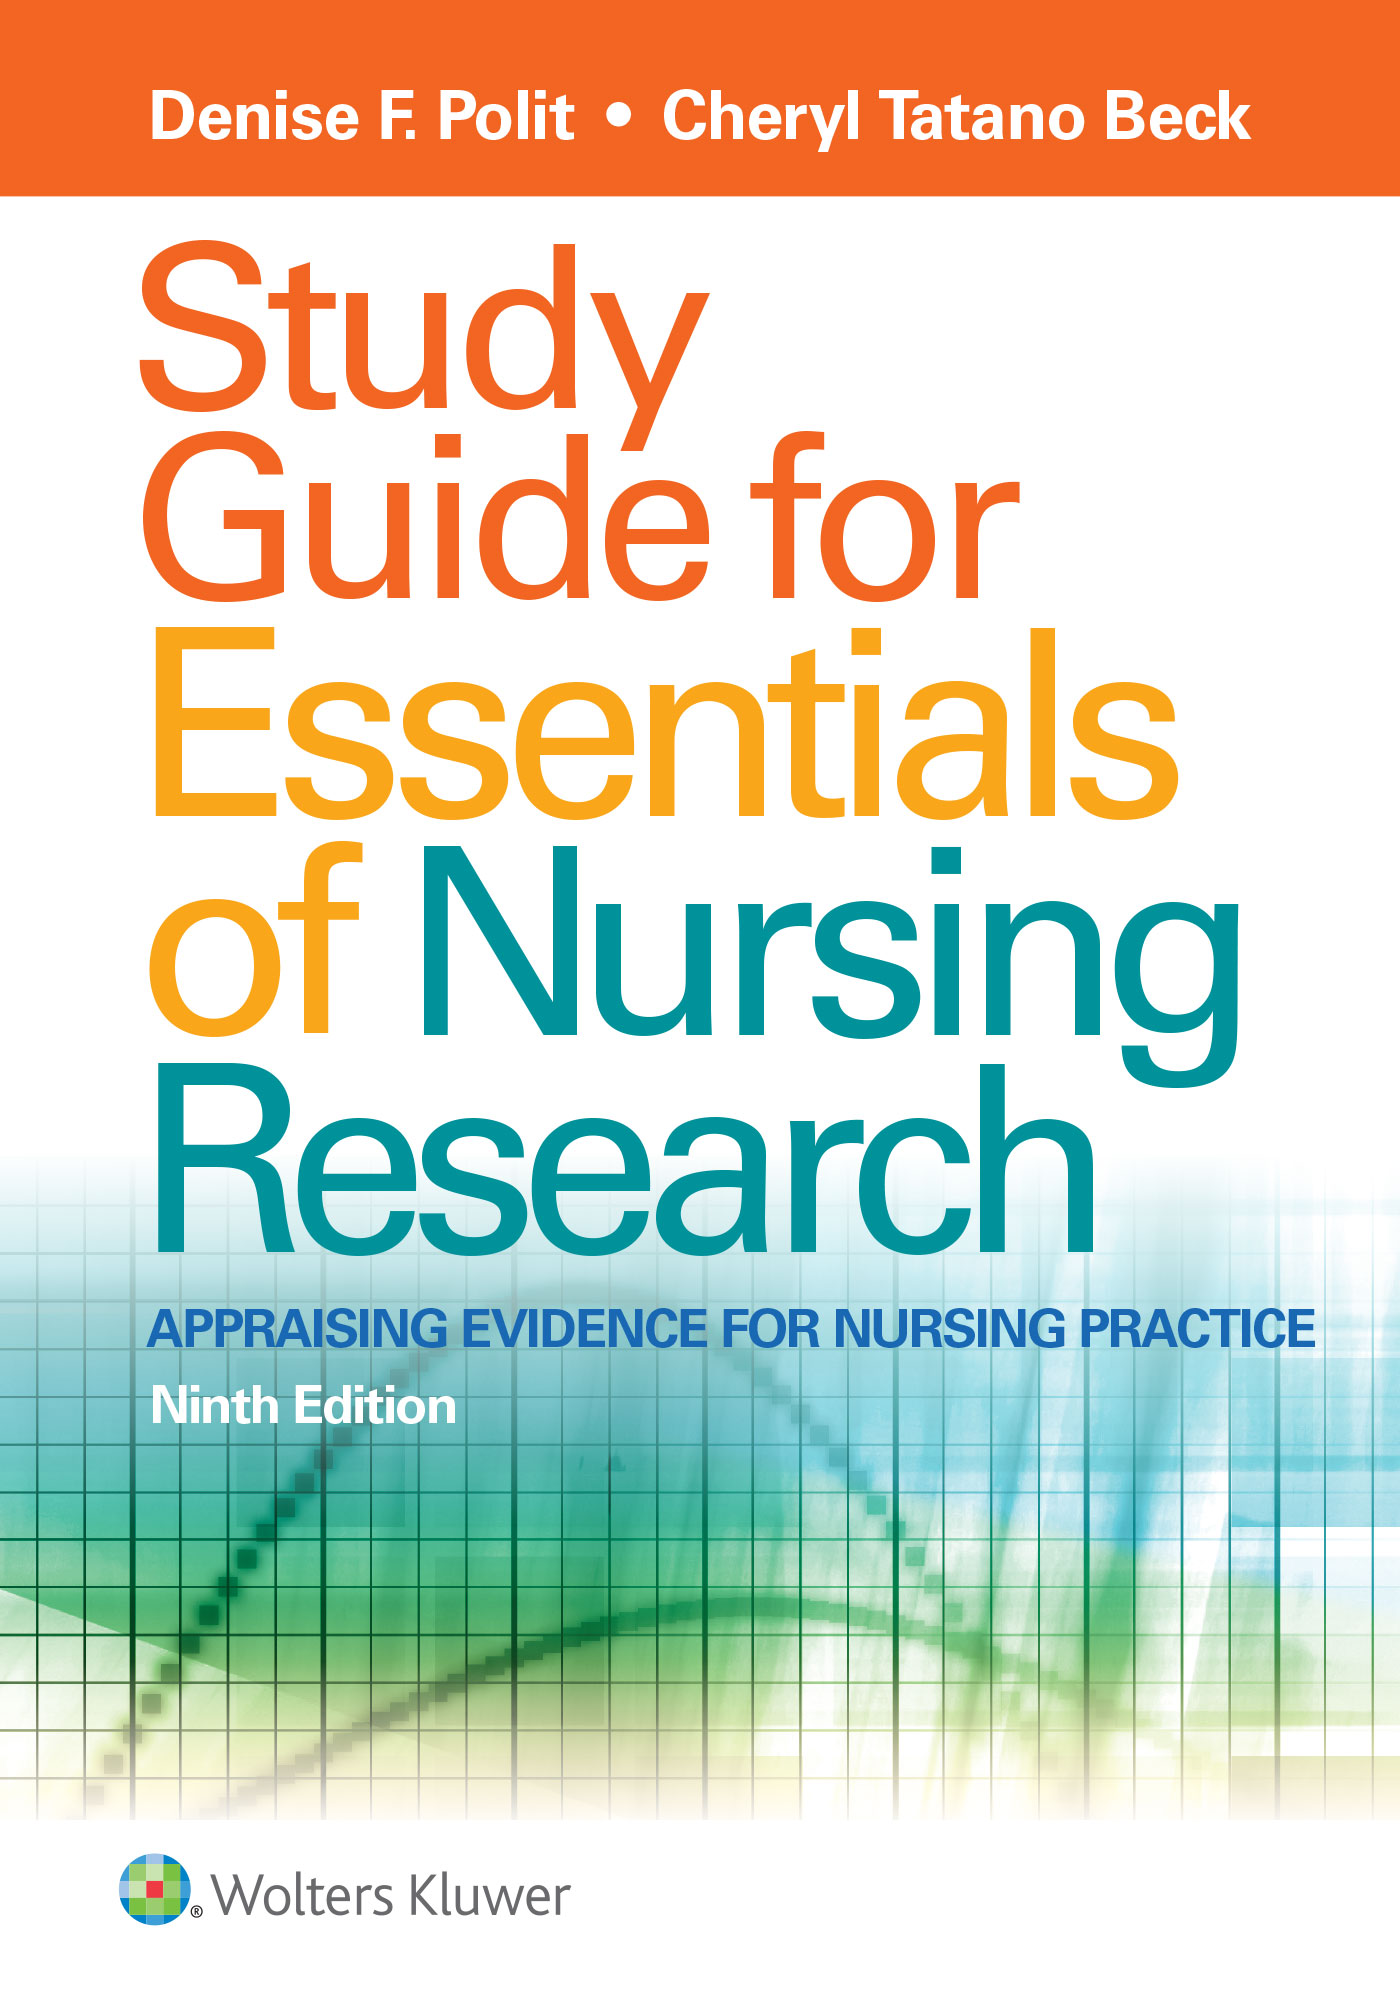 nursing assistant basic study guide 9th edition ebook